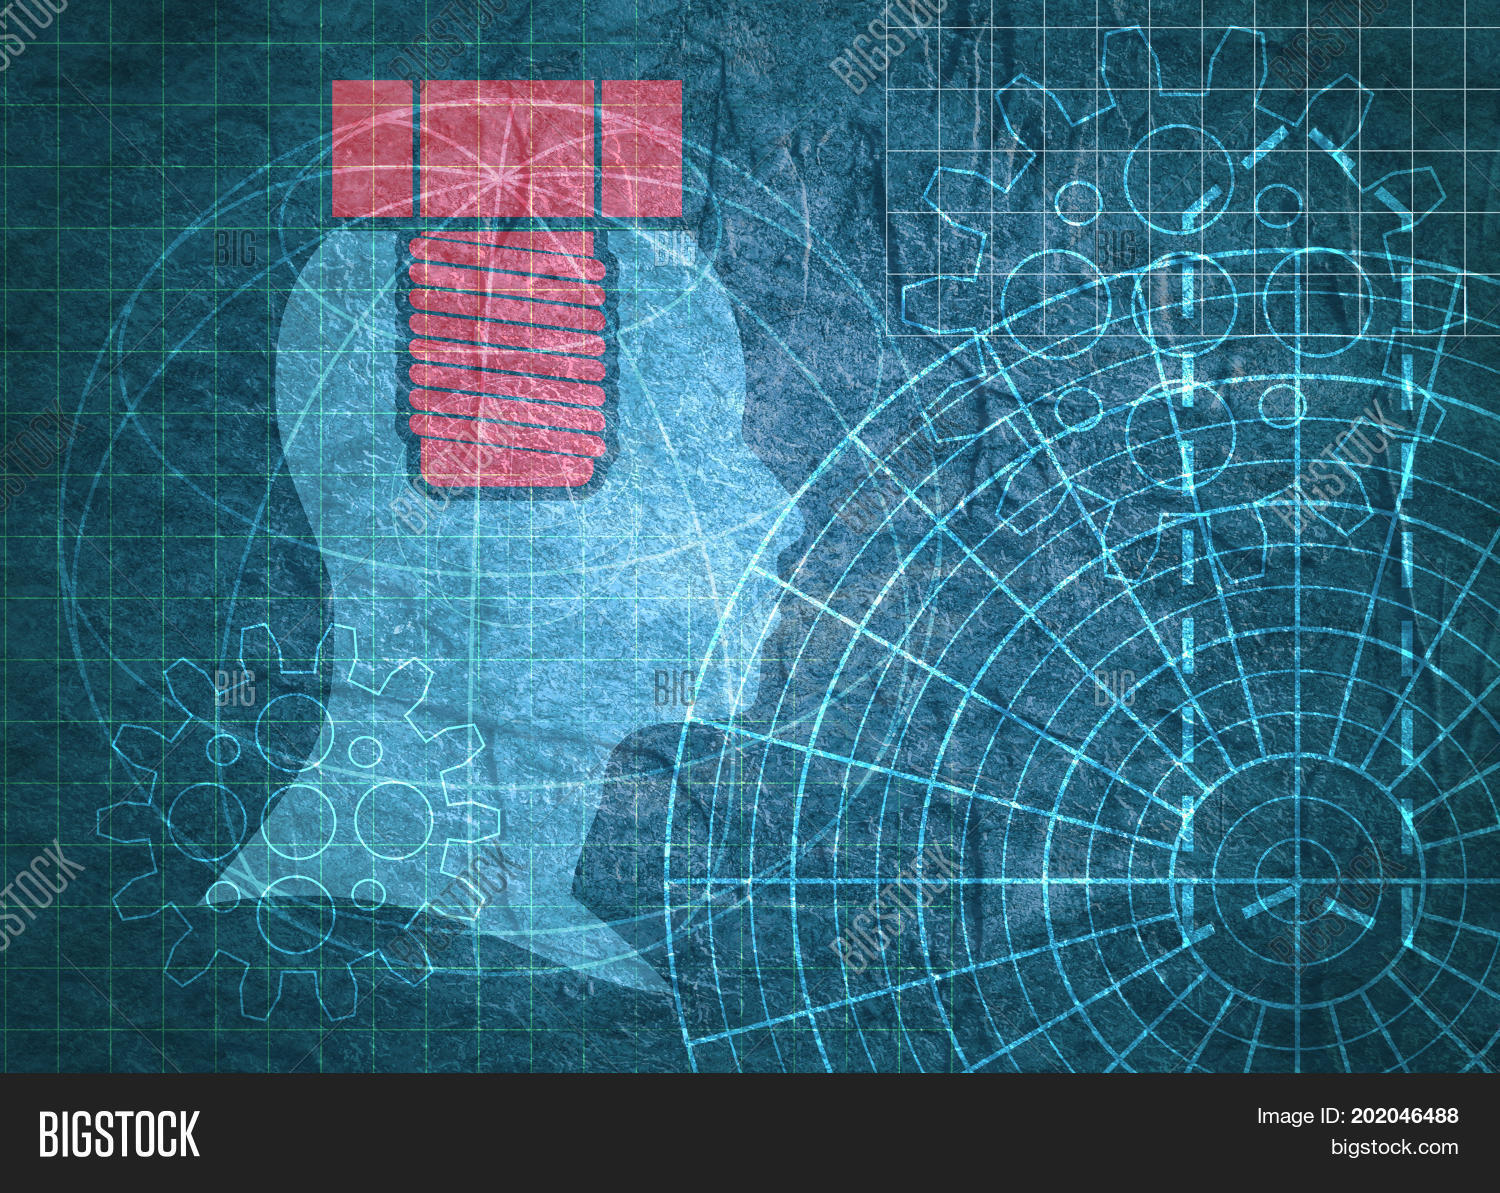 Old blueprint image photo free trial bigstock old blueprint background texture technical backdrop paper head silhouette on concrete textured backdrop malvernweather Gallery